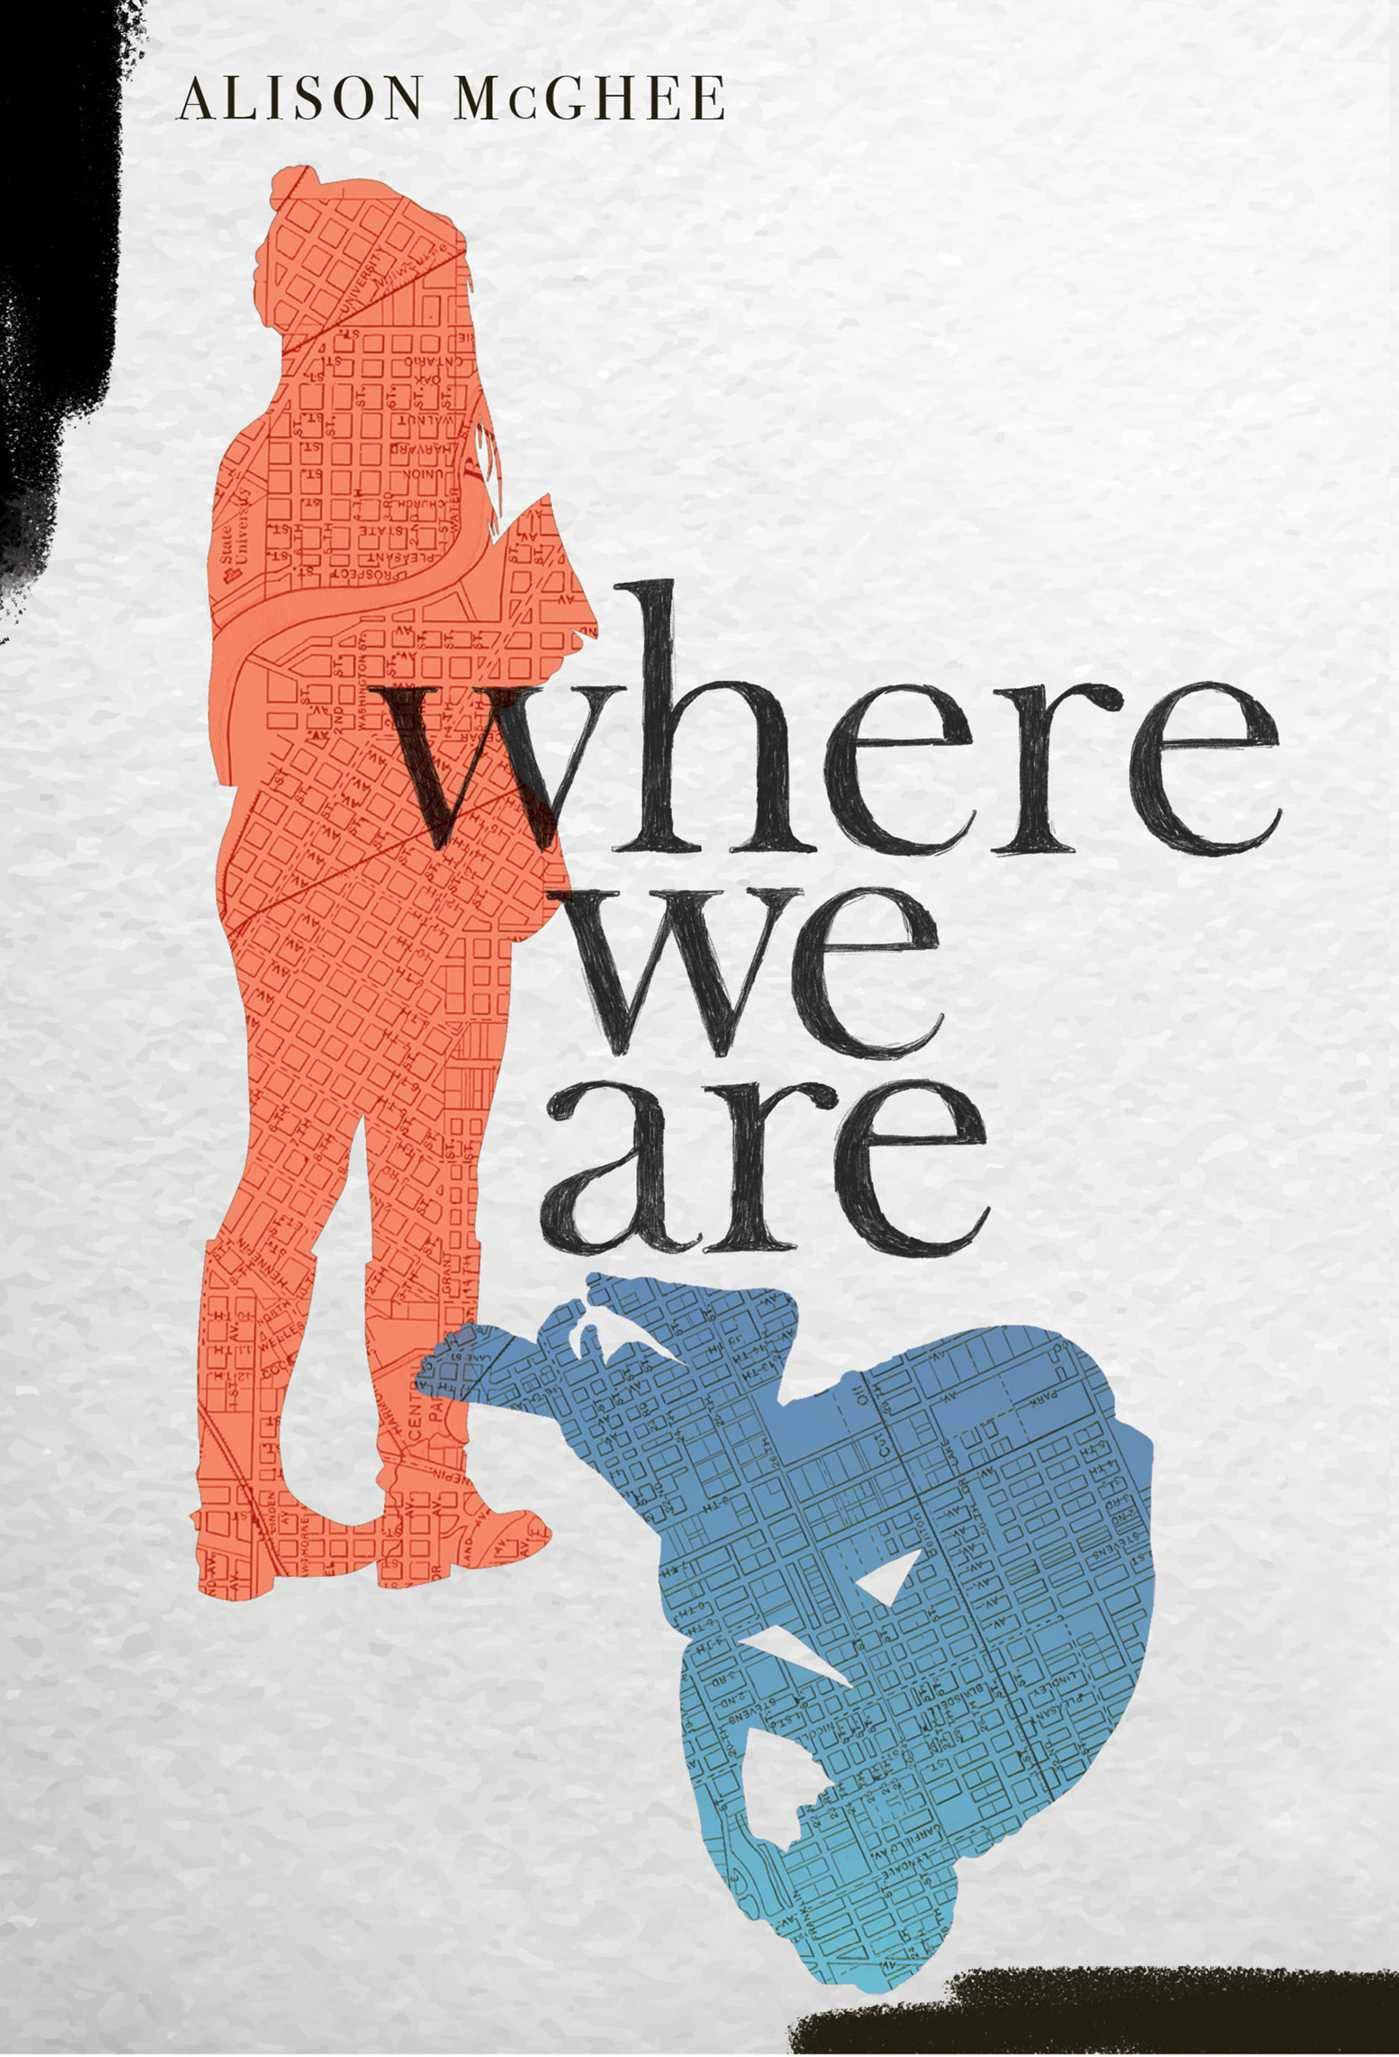 Amazon.com: Where We Are (9781534446120): McGhee, Alison: Books